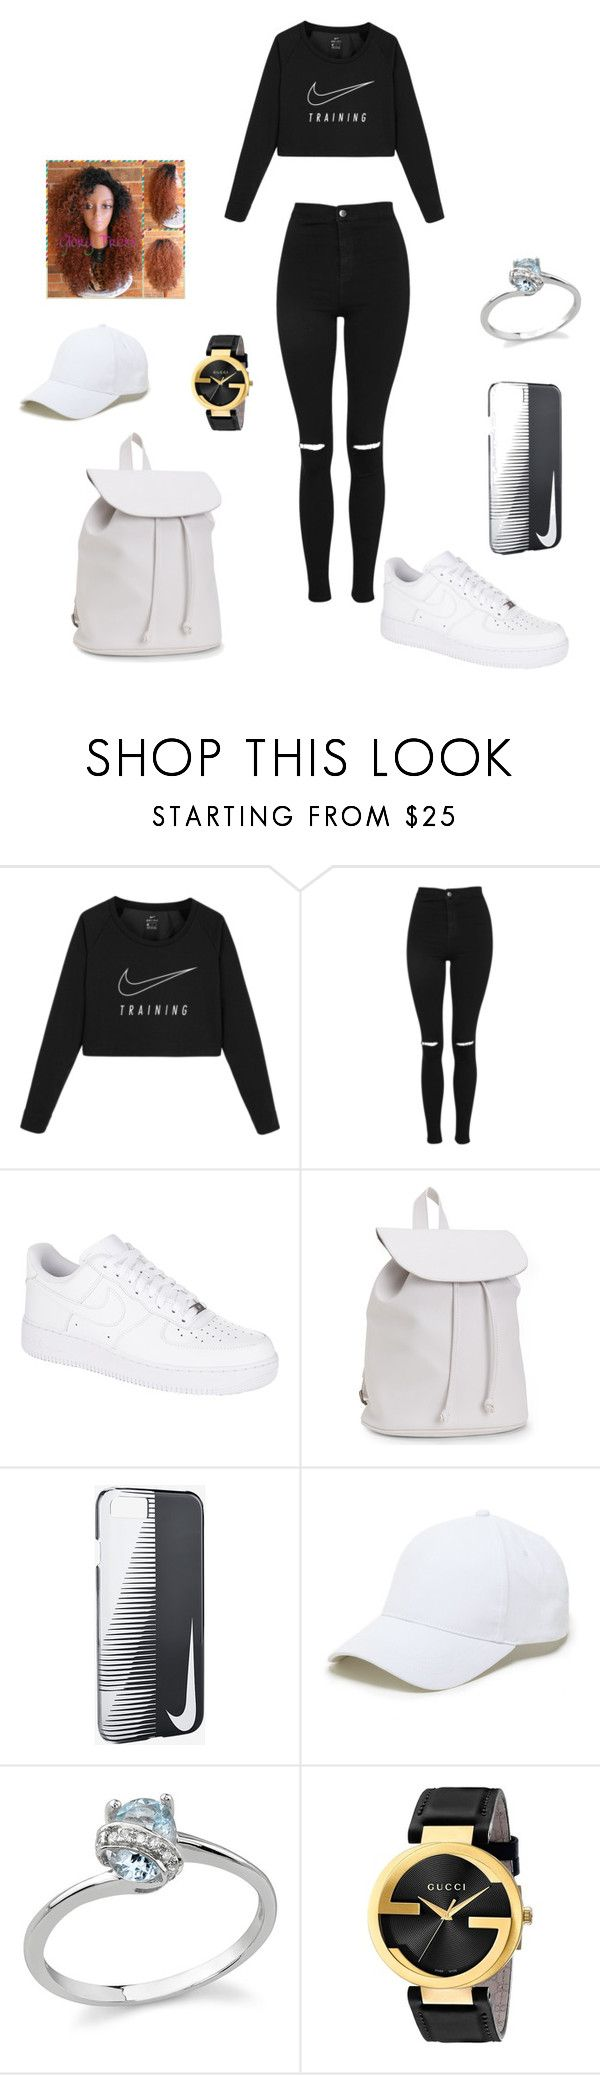 """""""nikes"""" by malachiaewarrenwifeyjunnewarre on Polyvore featuring NIKE, Topshop, Aéropostale, Sole Society and Gucci"""